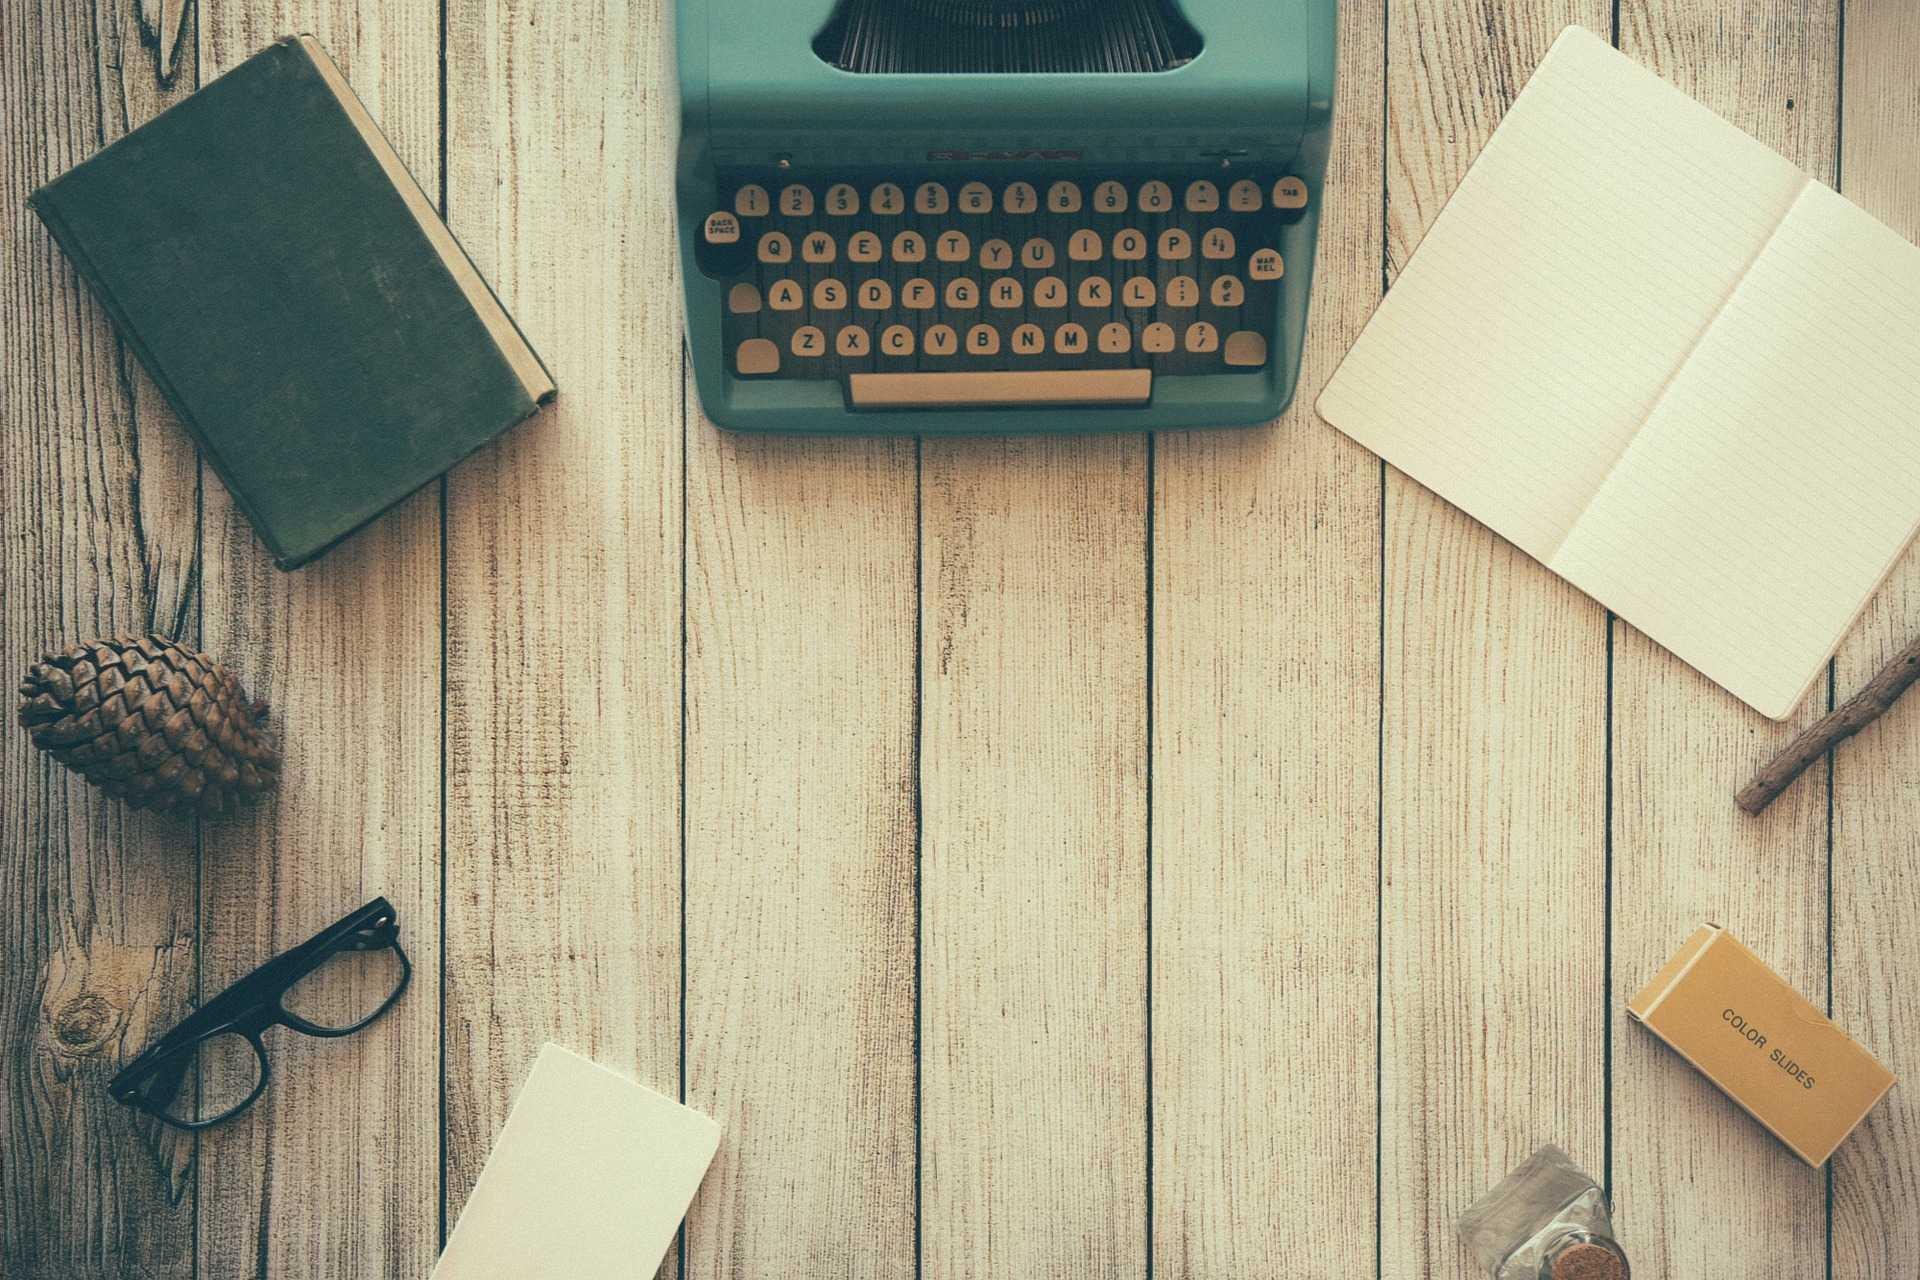 Six Active Blogging and Writing Communities Where You Can Share an Experience